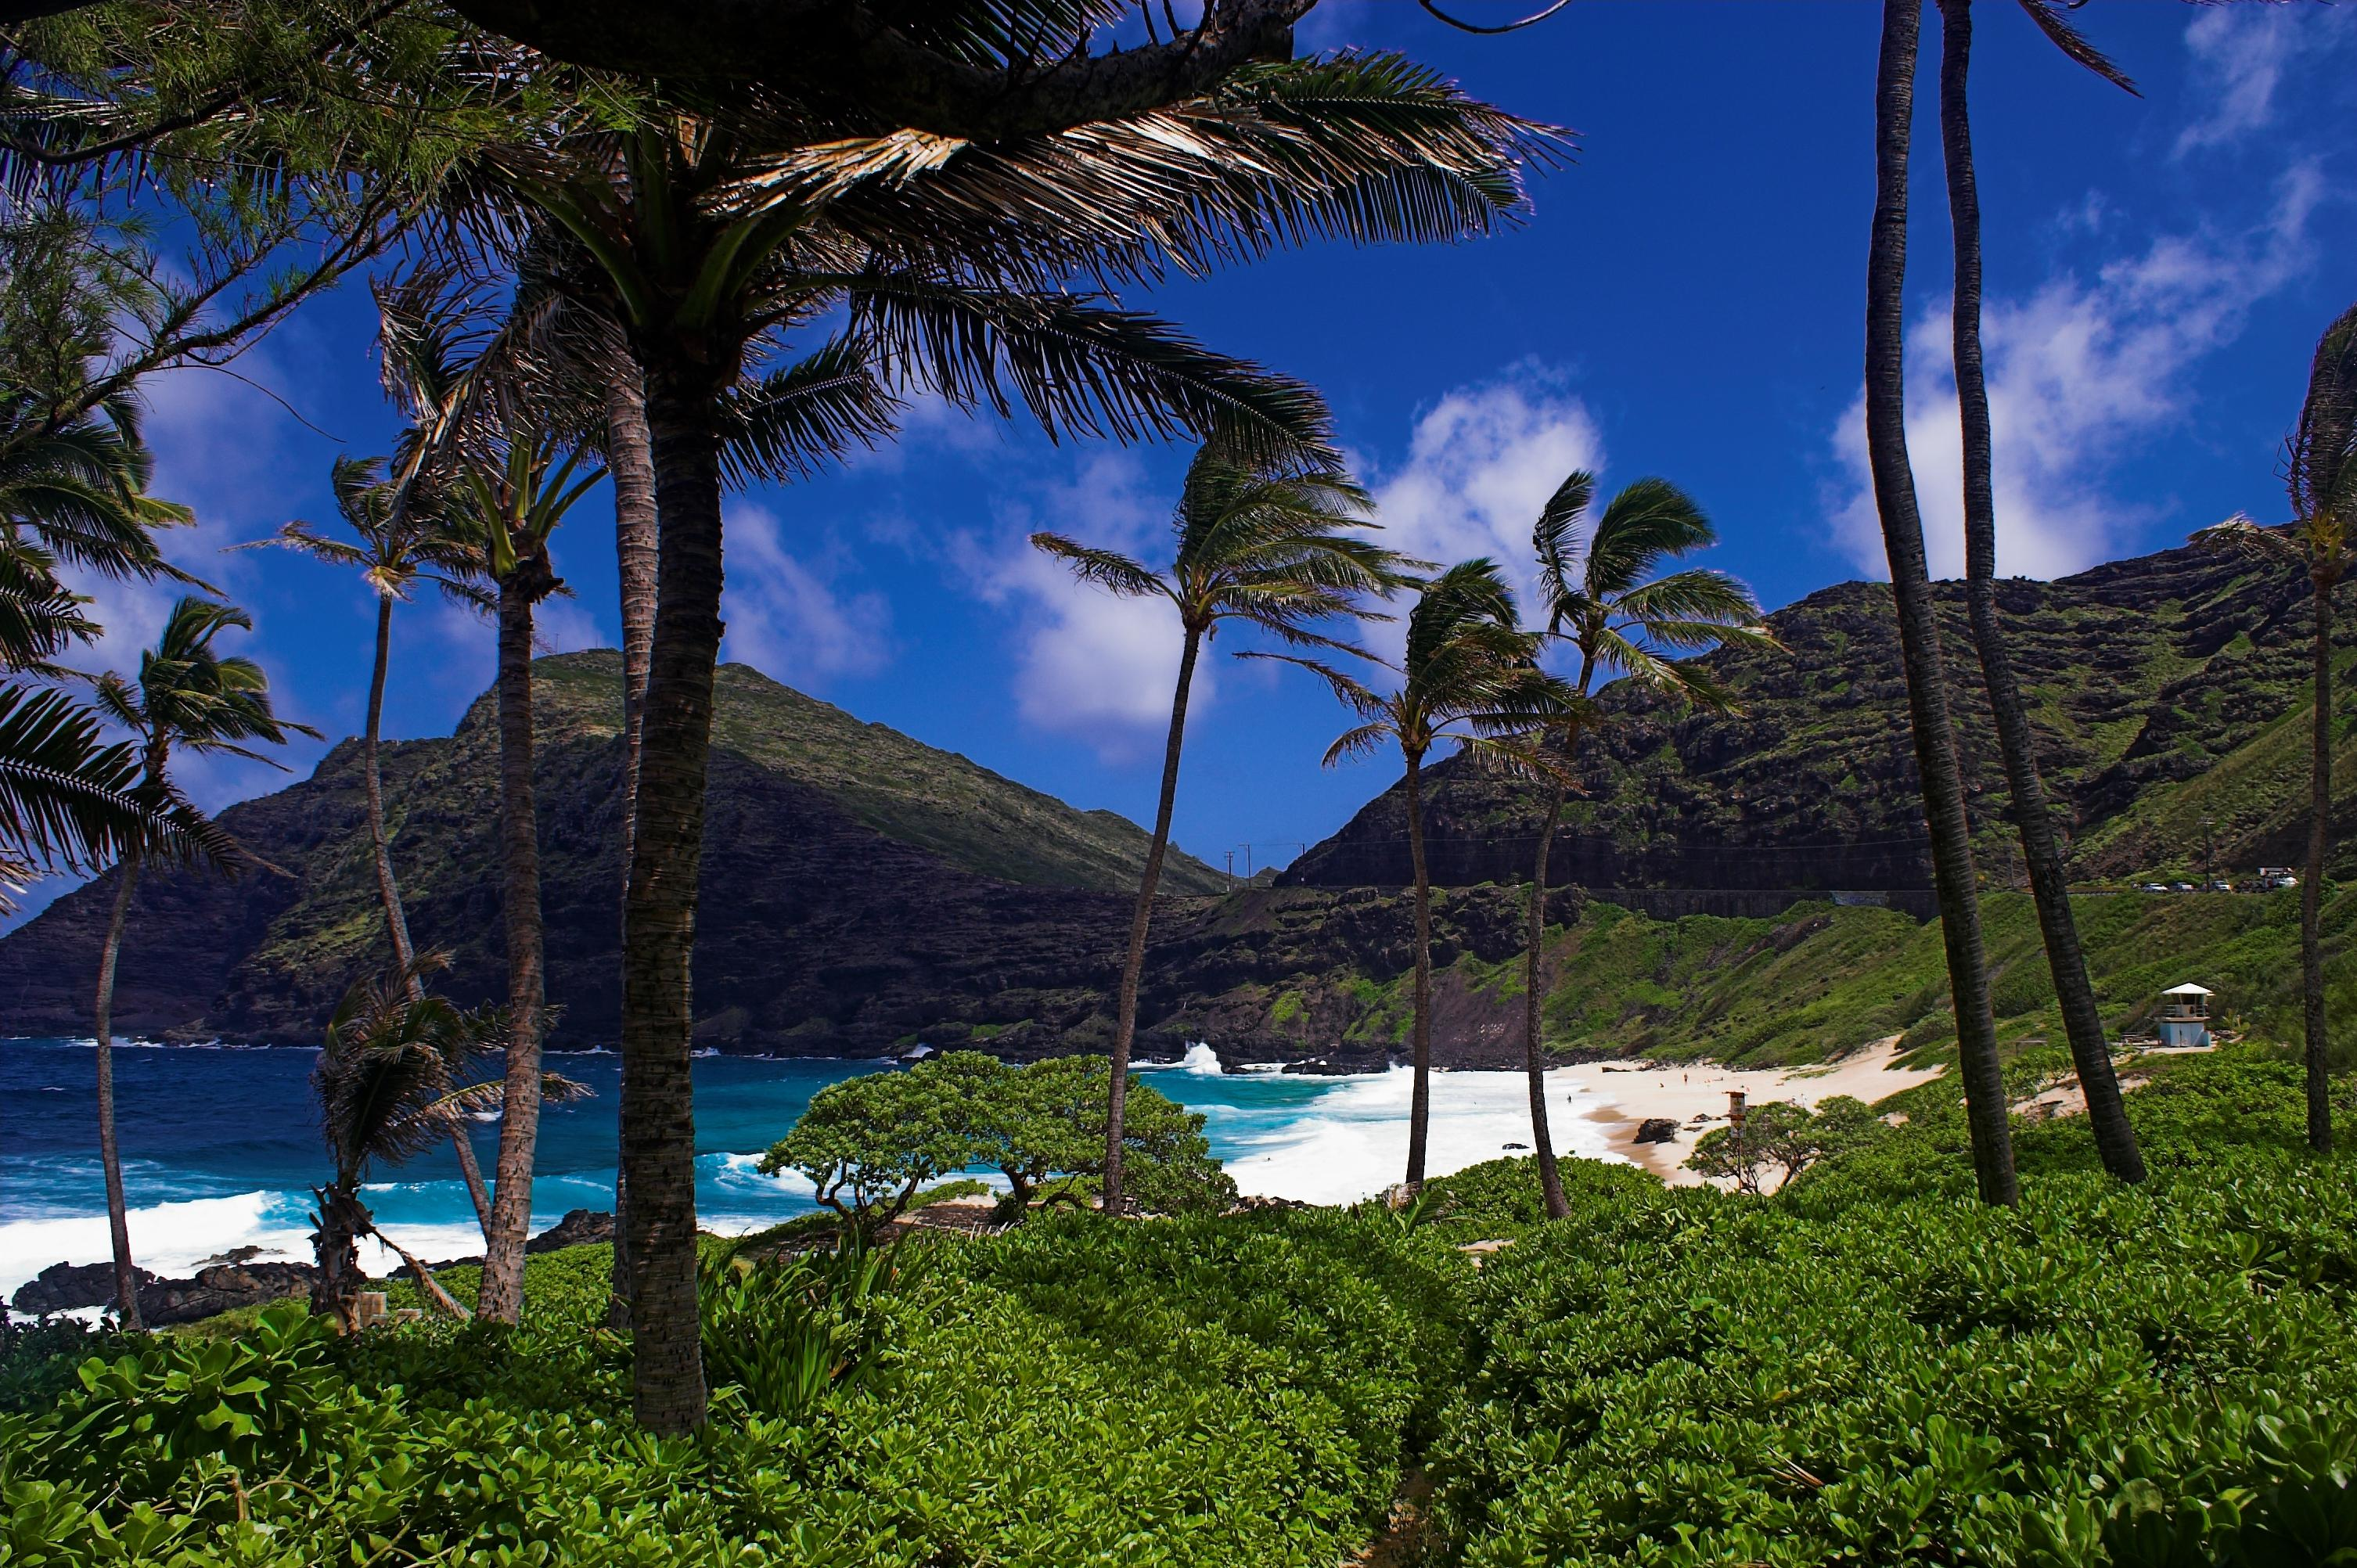 "Oahu Windward (East) Shore<br />Photo <a href=""//creativecommons.org/licences/by-nc-nd/3.0/"" class=""cc-small"" target=""_blank""><img typeof=""foaf:Image"" class=""image-style-none"" src=""//i.creativecommons.org/l/by-nc-nd/3.0/80x15.png"" width=""80px"" height=""15px"" alt=""Creative Commons Licence"" /></a> <a href=""https://www.flickr.com/photos/72451959@N00/475099572"">Paul Vladuchick</a>"